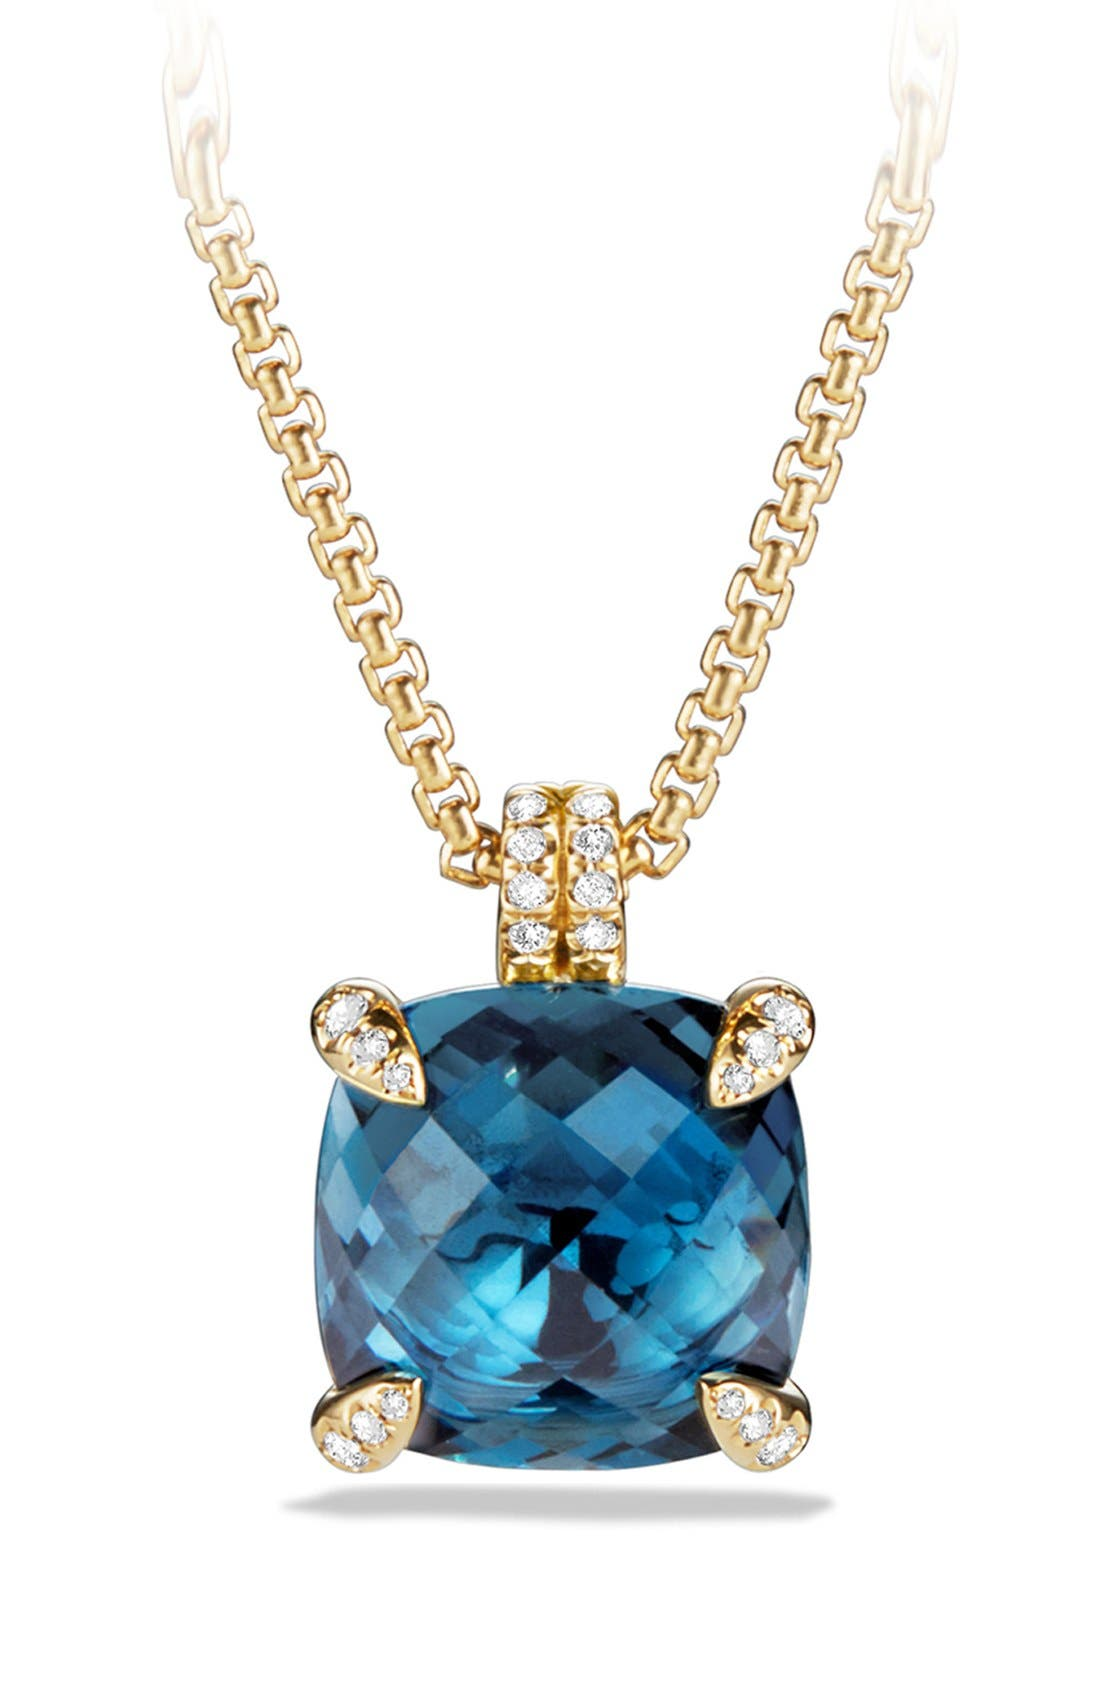 David Yurman 'Châtelaine' Pendant Necklace with Diamonds in 18K Gold